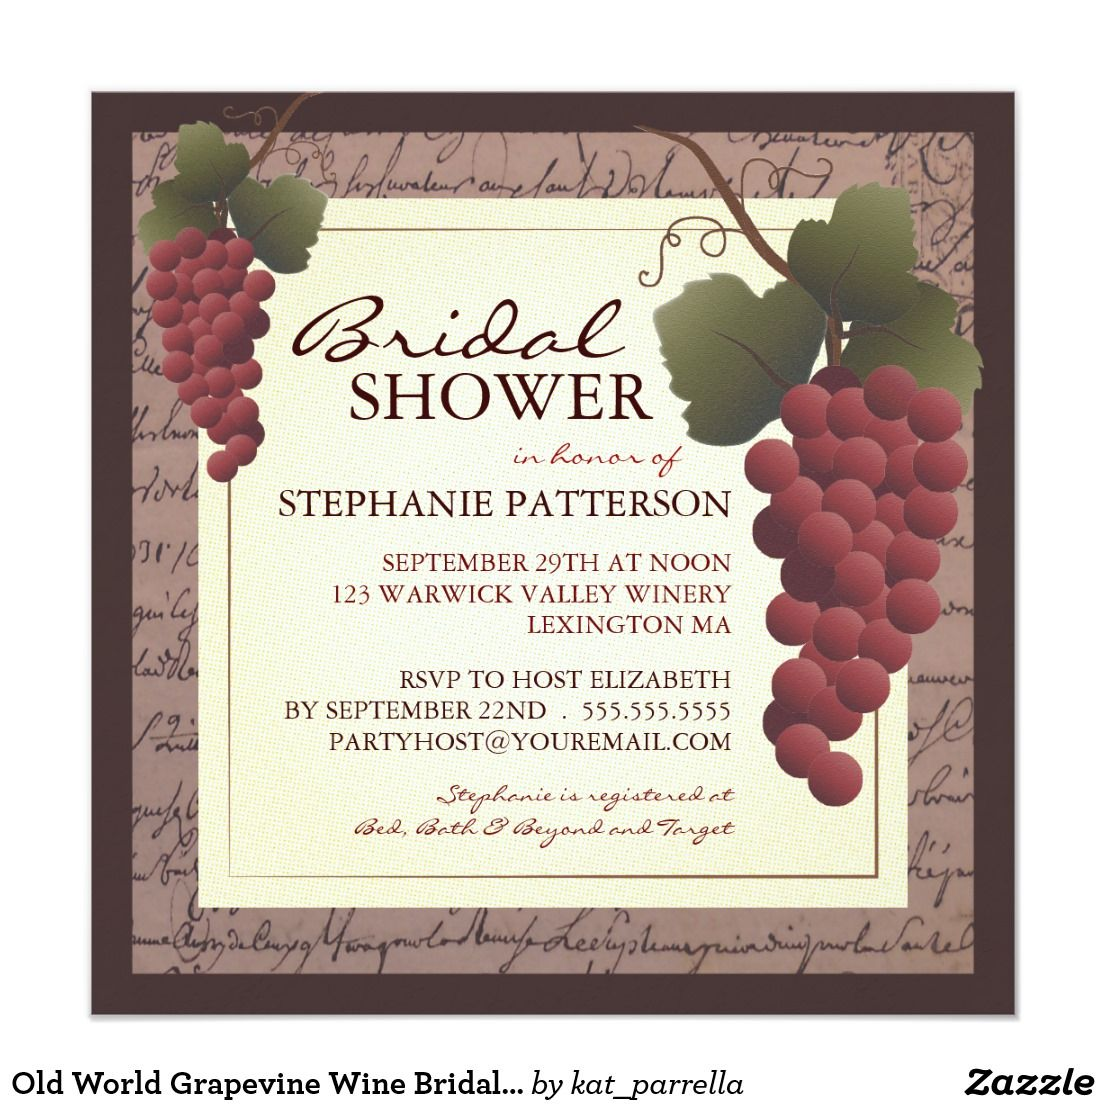 Old World Grapevine Wine Bridal Shower Invitation A beautiful ...